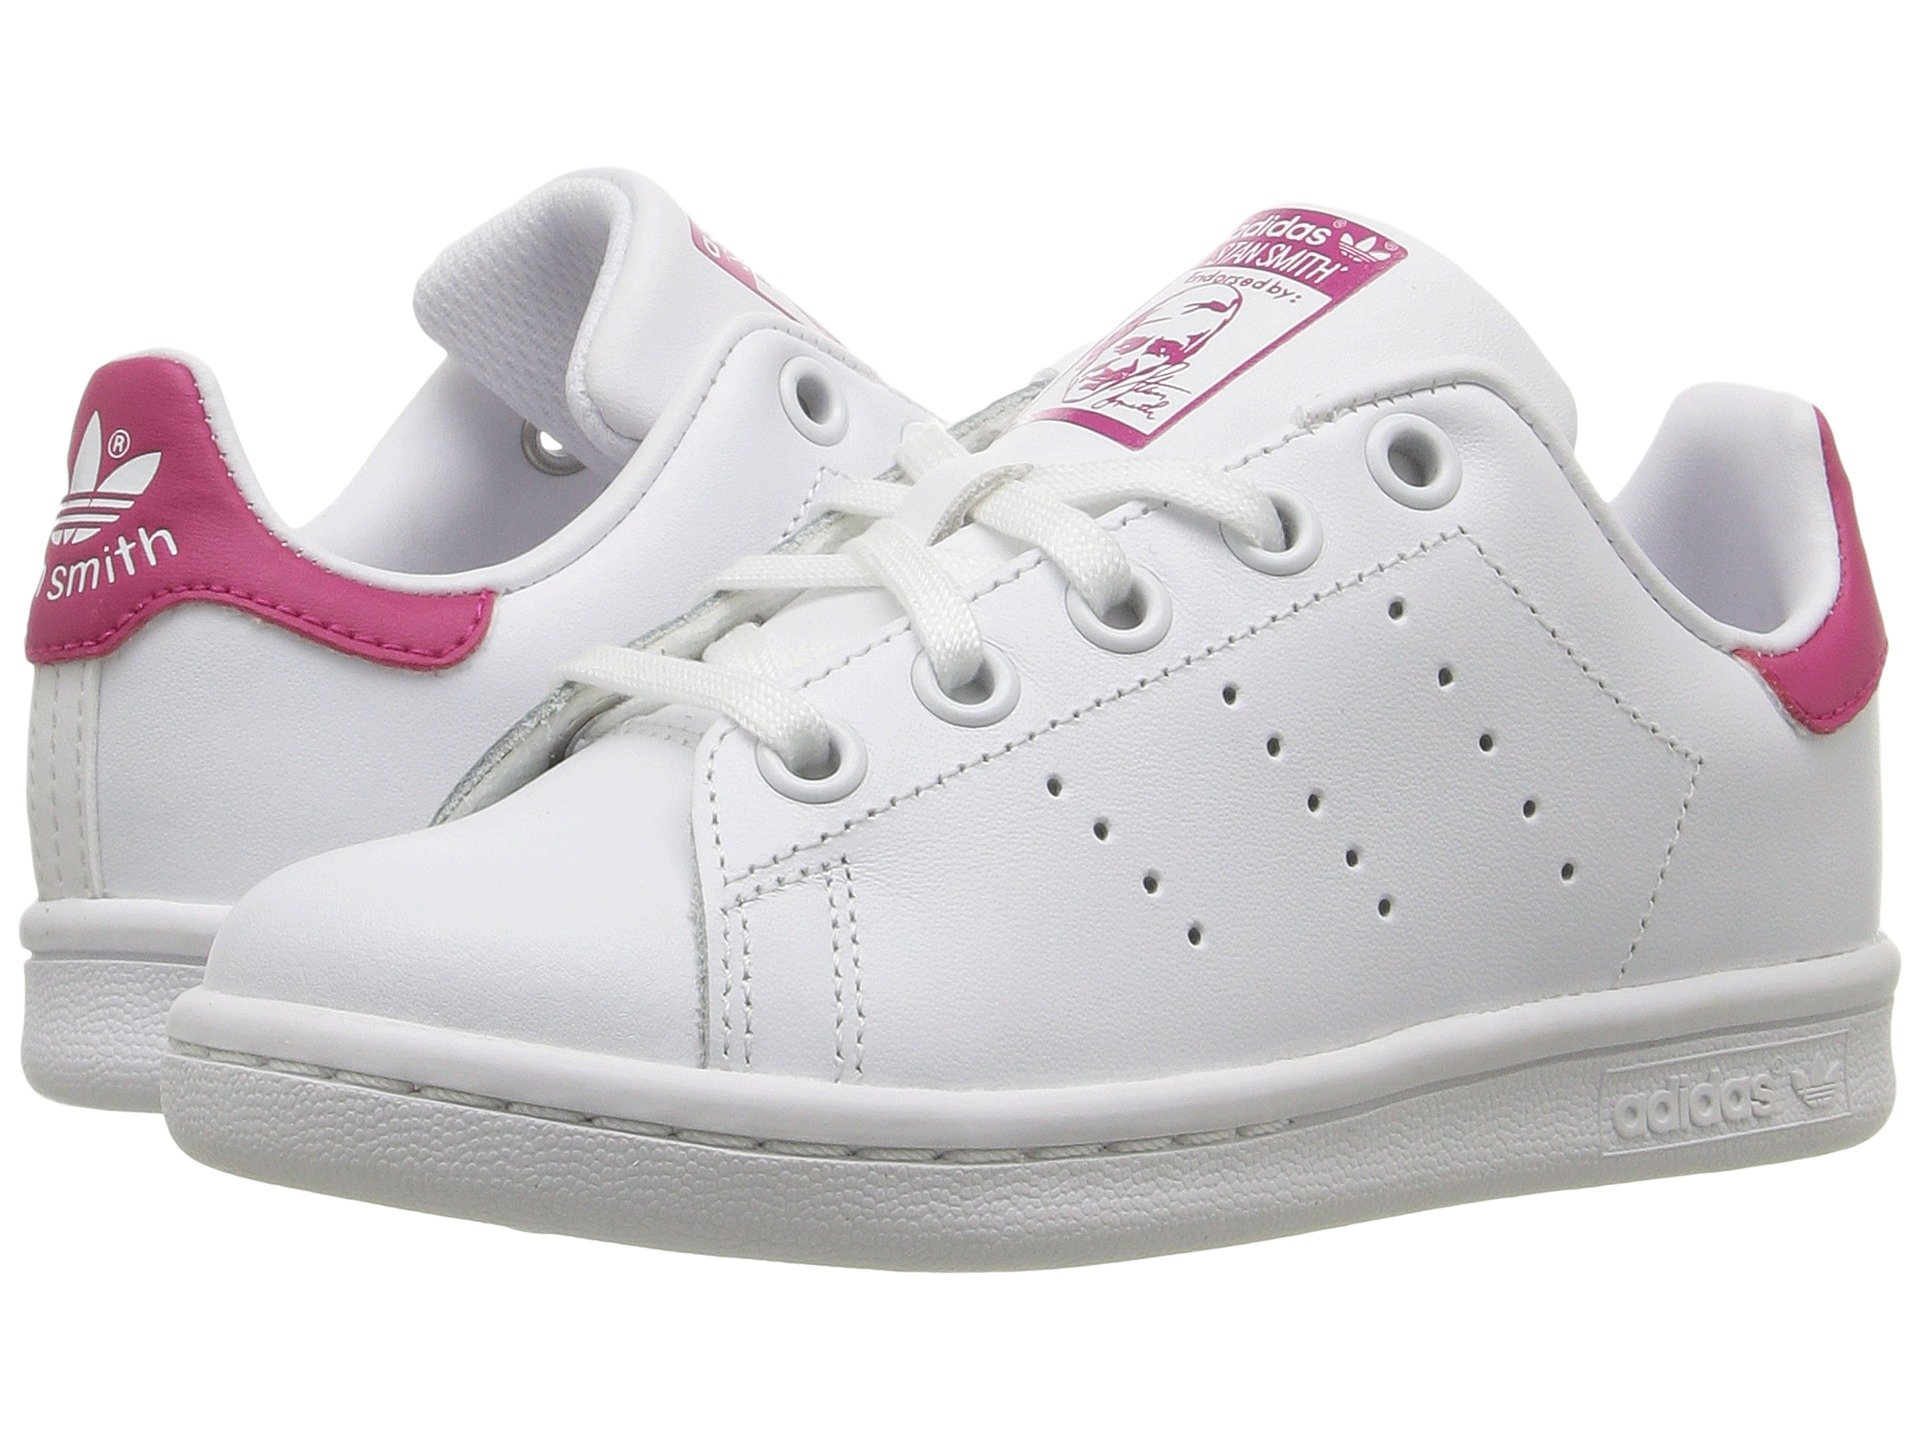 Stan Smith Little Kid adidas Originals Kids